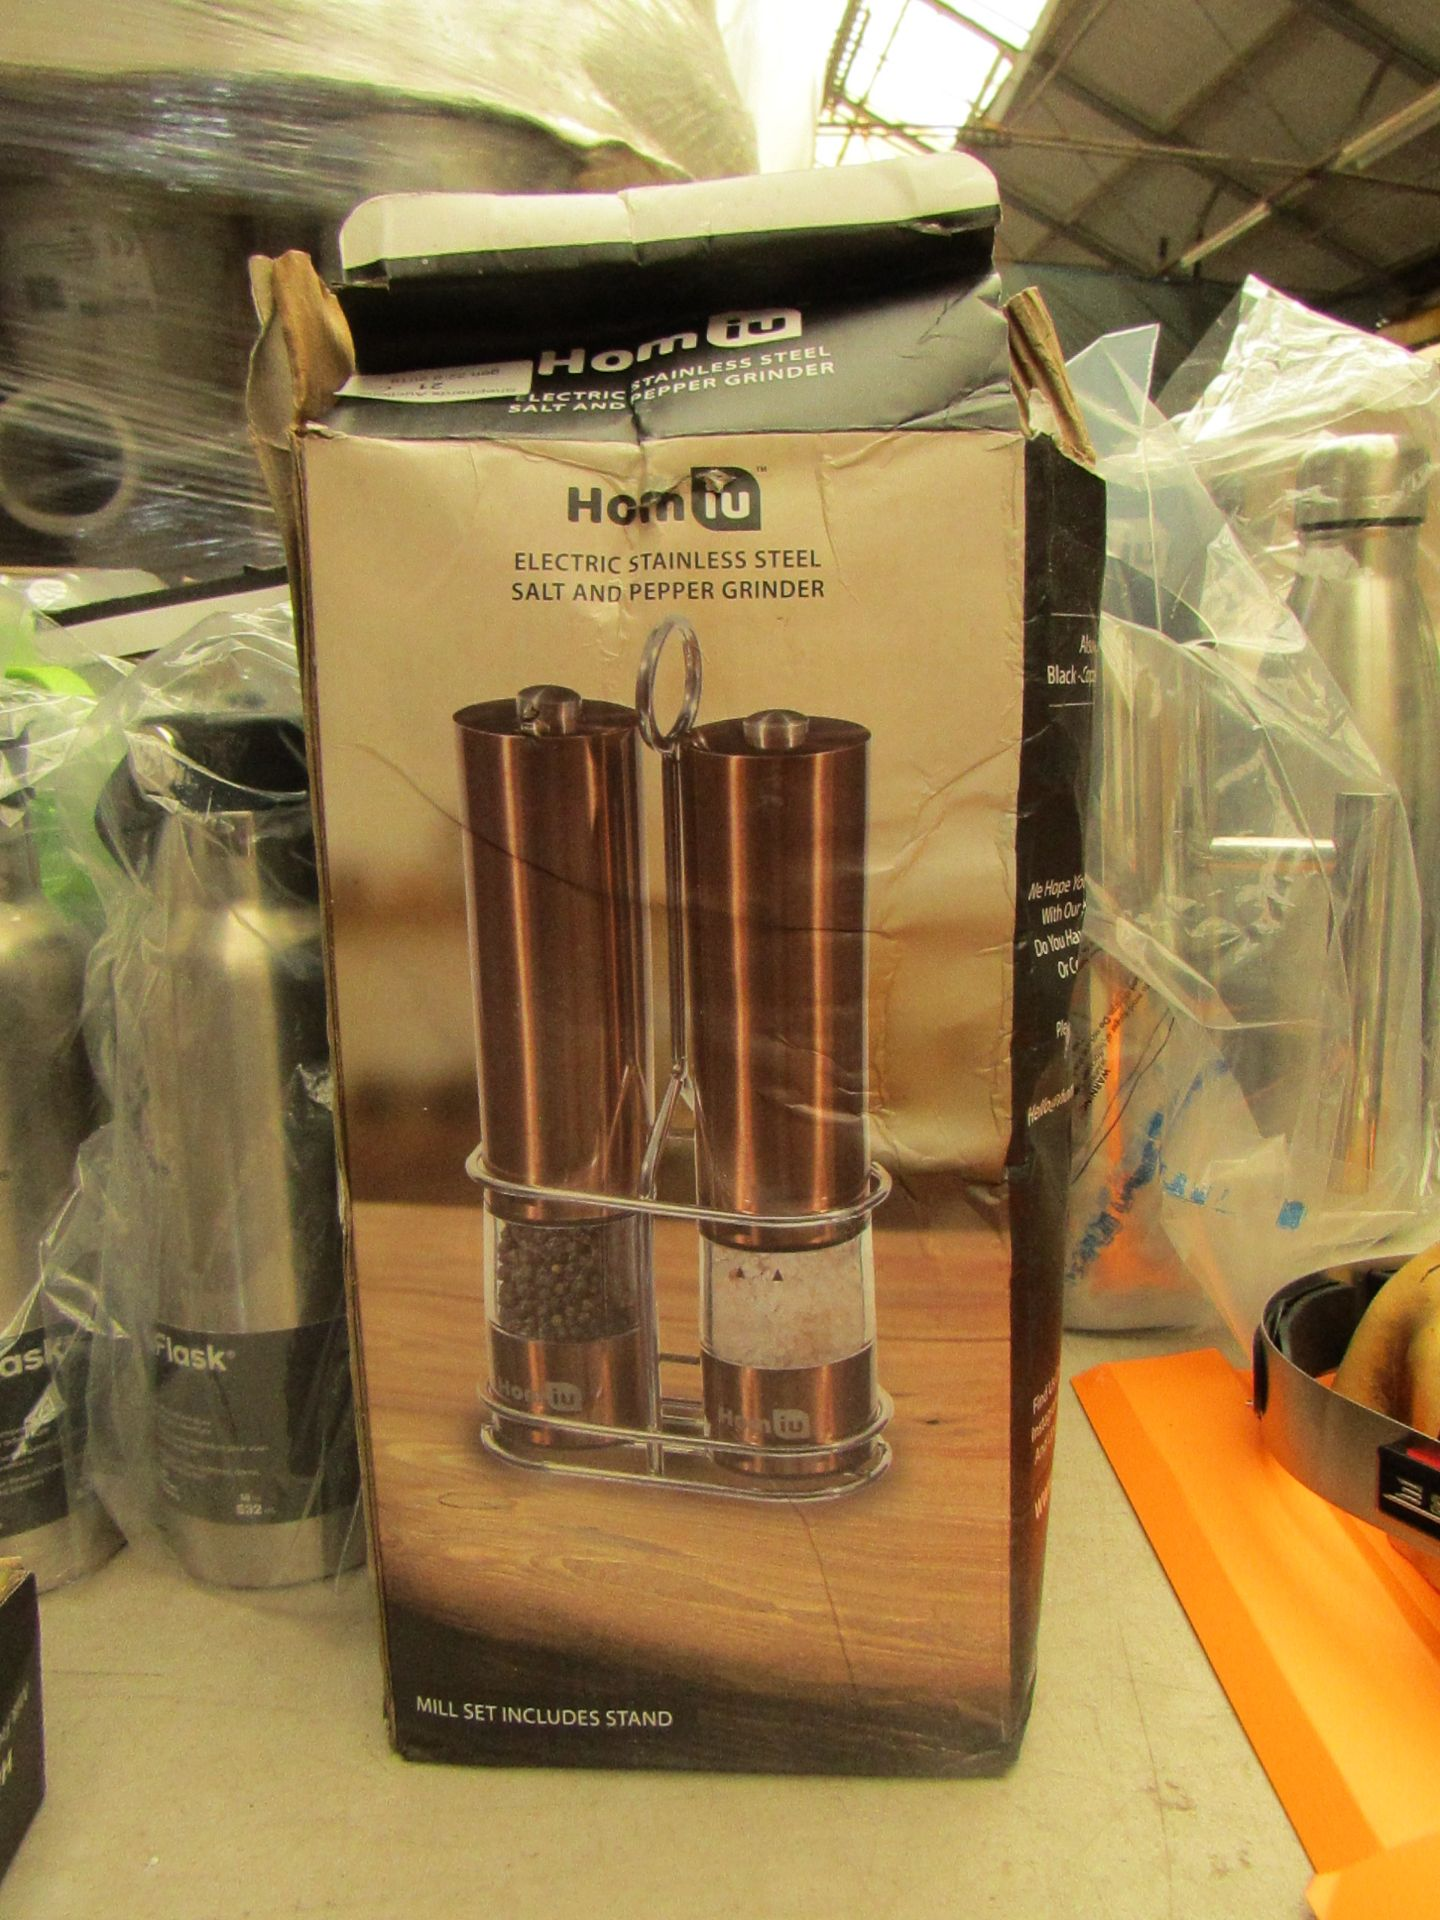 Lotto 21 - Homiu Electric Stainless Steel Salt and Pepper Grinder set in Copper . Boxed